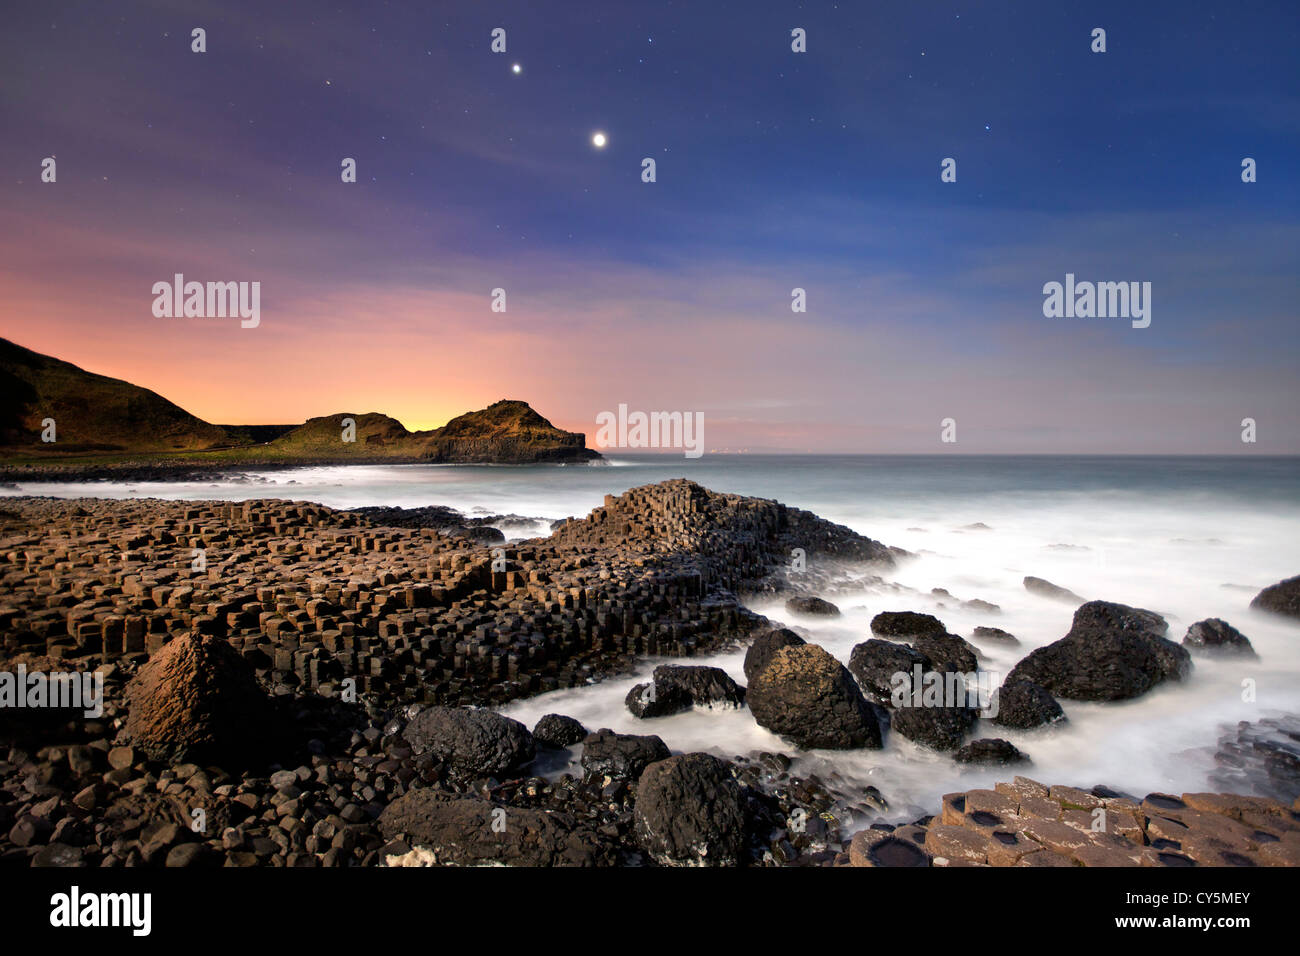 The Giants Causeway at night showing conjunction of Venus and Jupiter in sky. - Stock Image